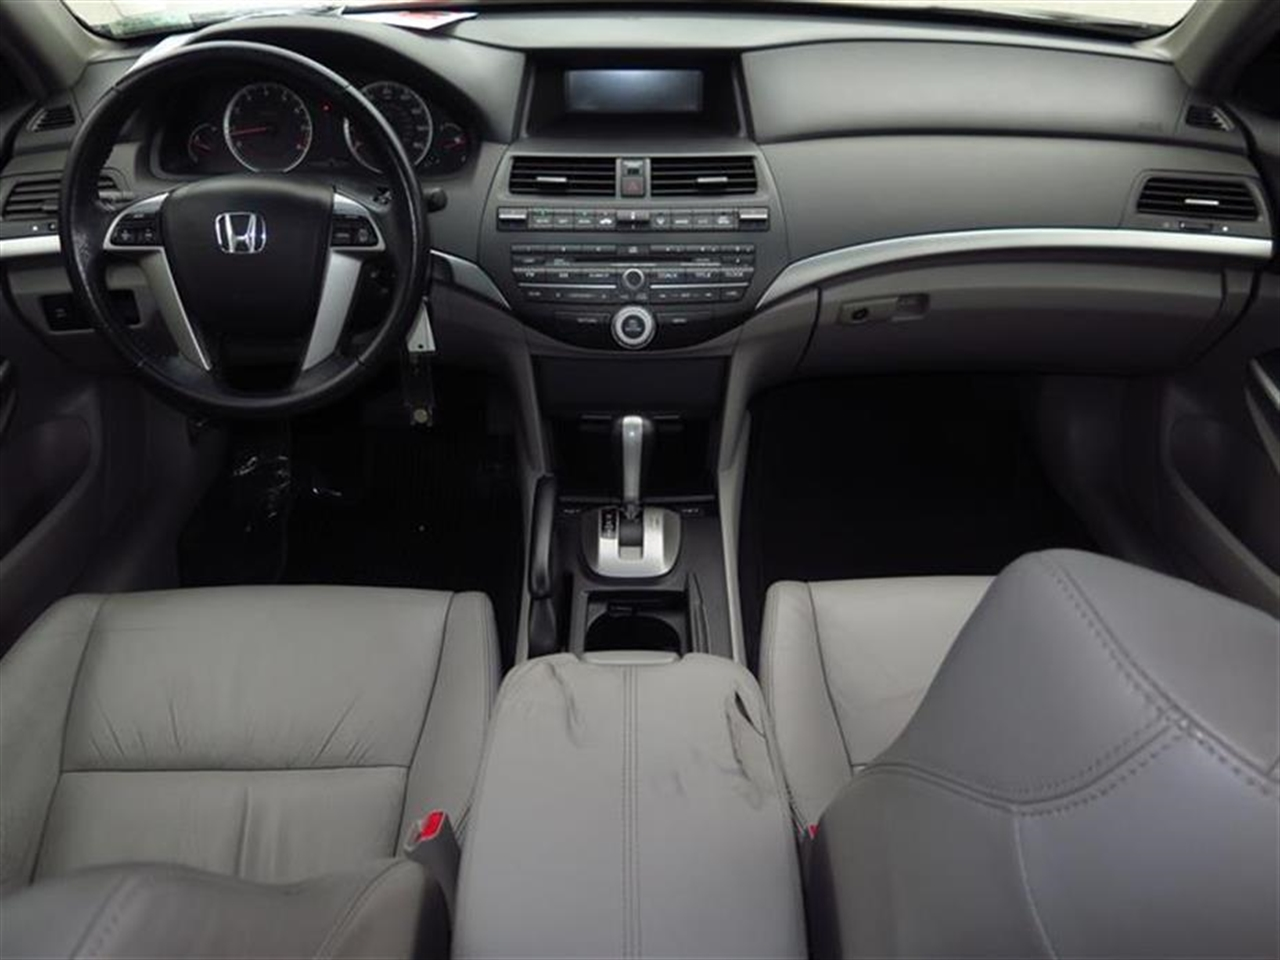 2009 HONDA ACCORD SDN 4dr V6 Auto EX-L 44550 miles 2 12V pwr outlets Auto-dimming rearview mi